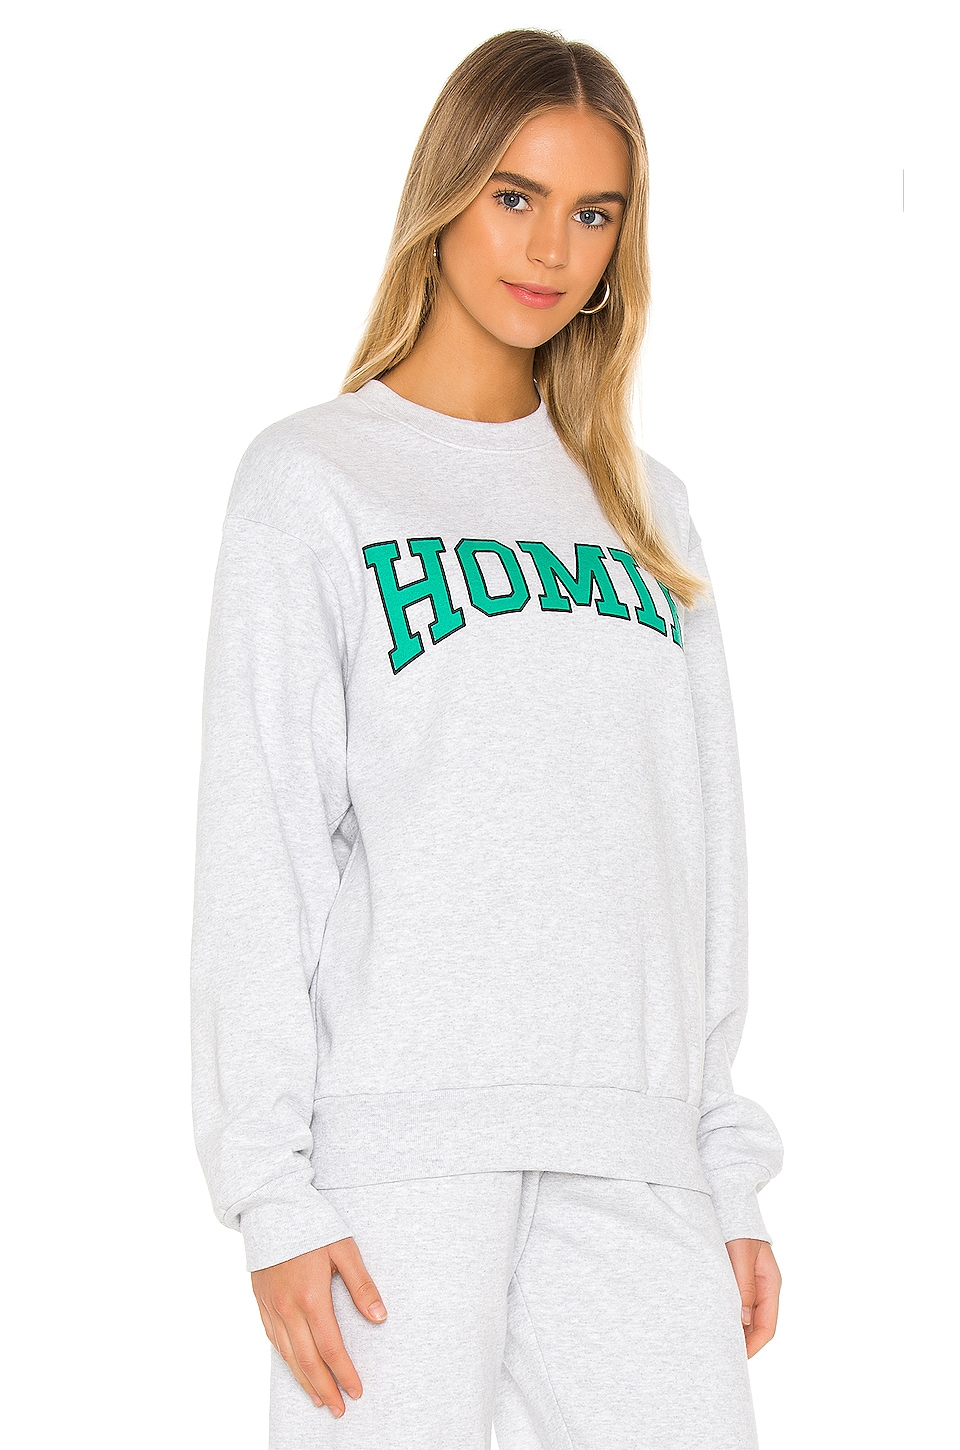 Homie Sweatshirt, view 2, click to view large image.